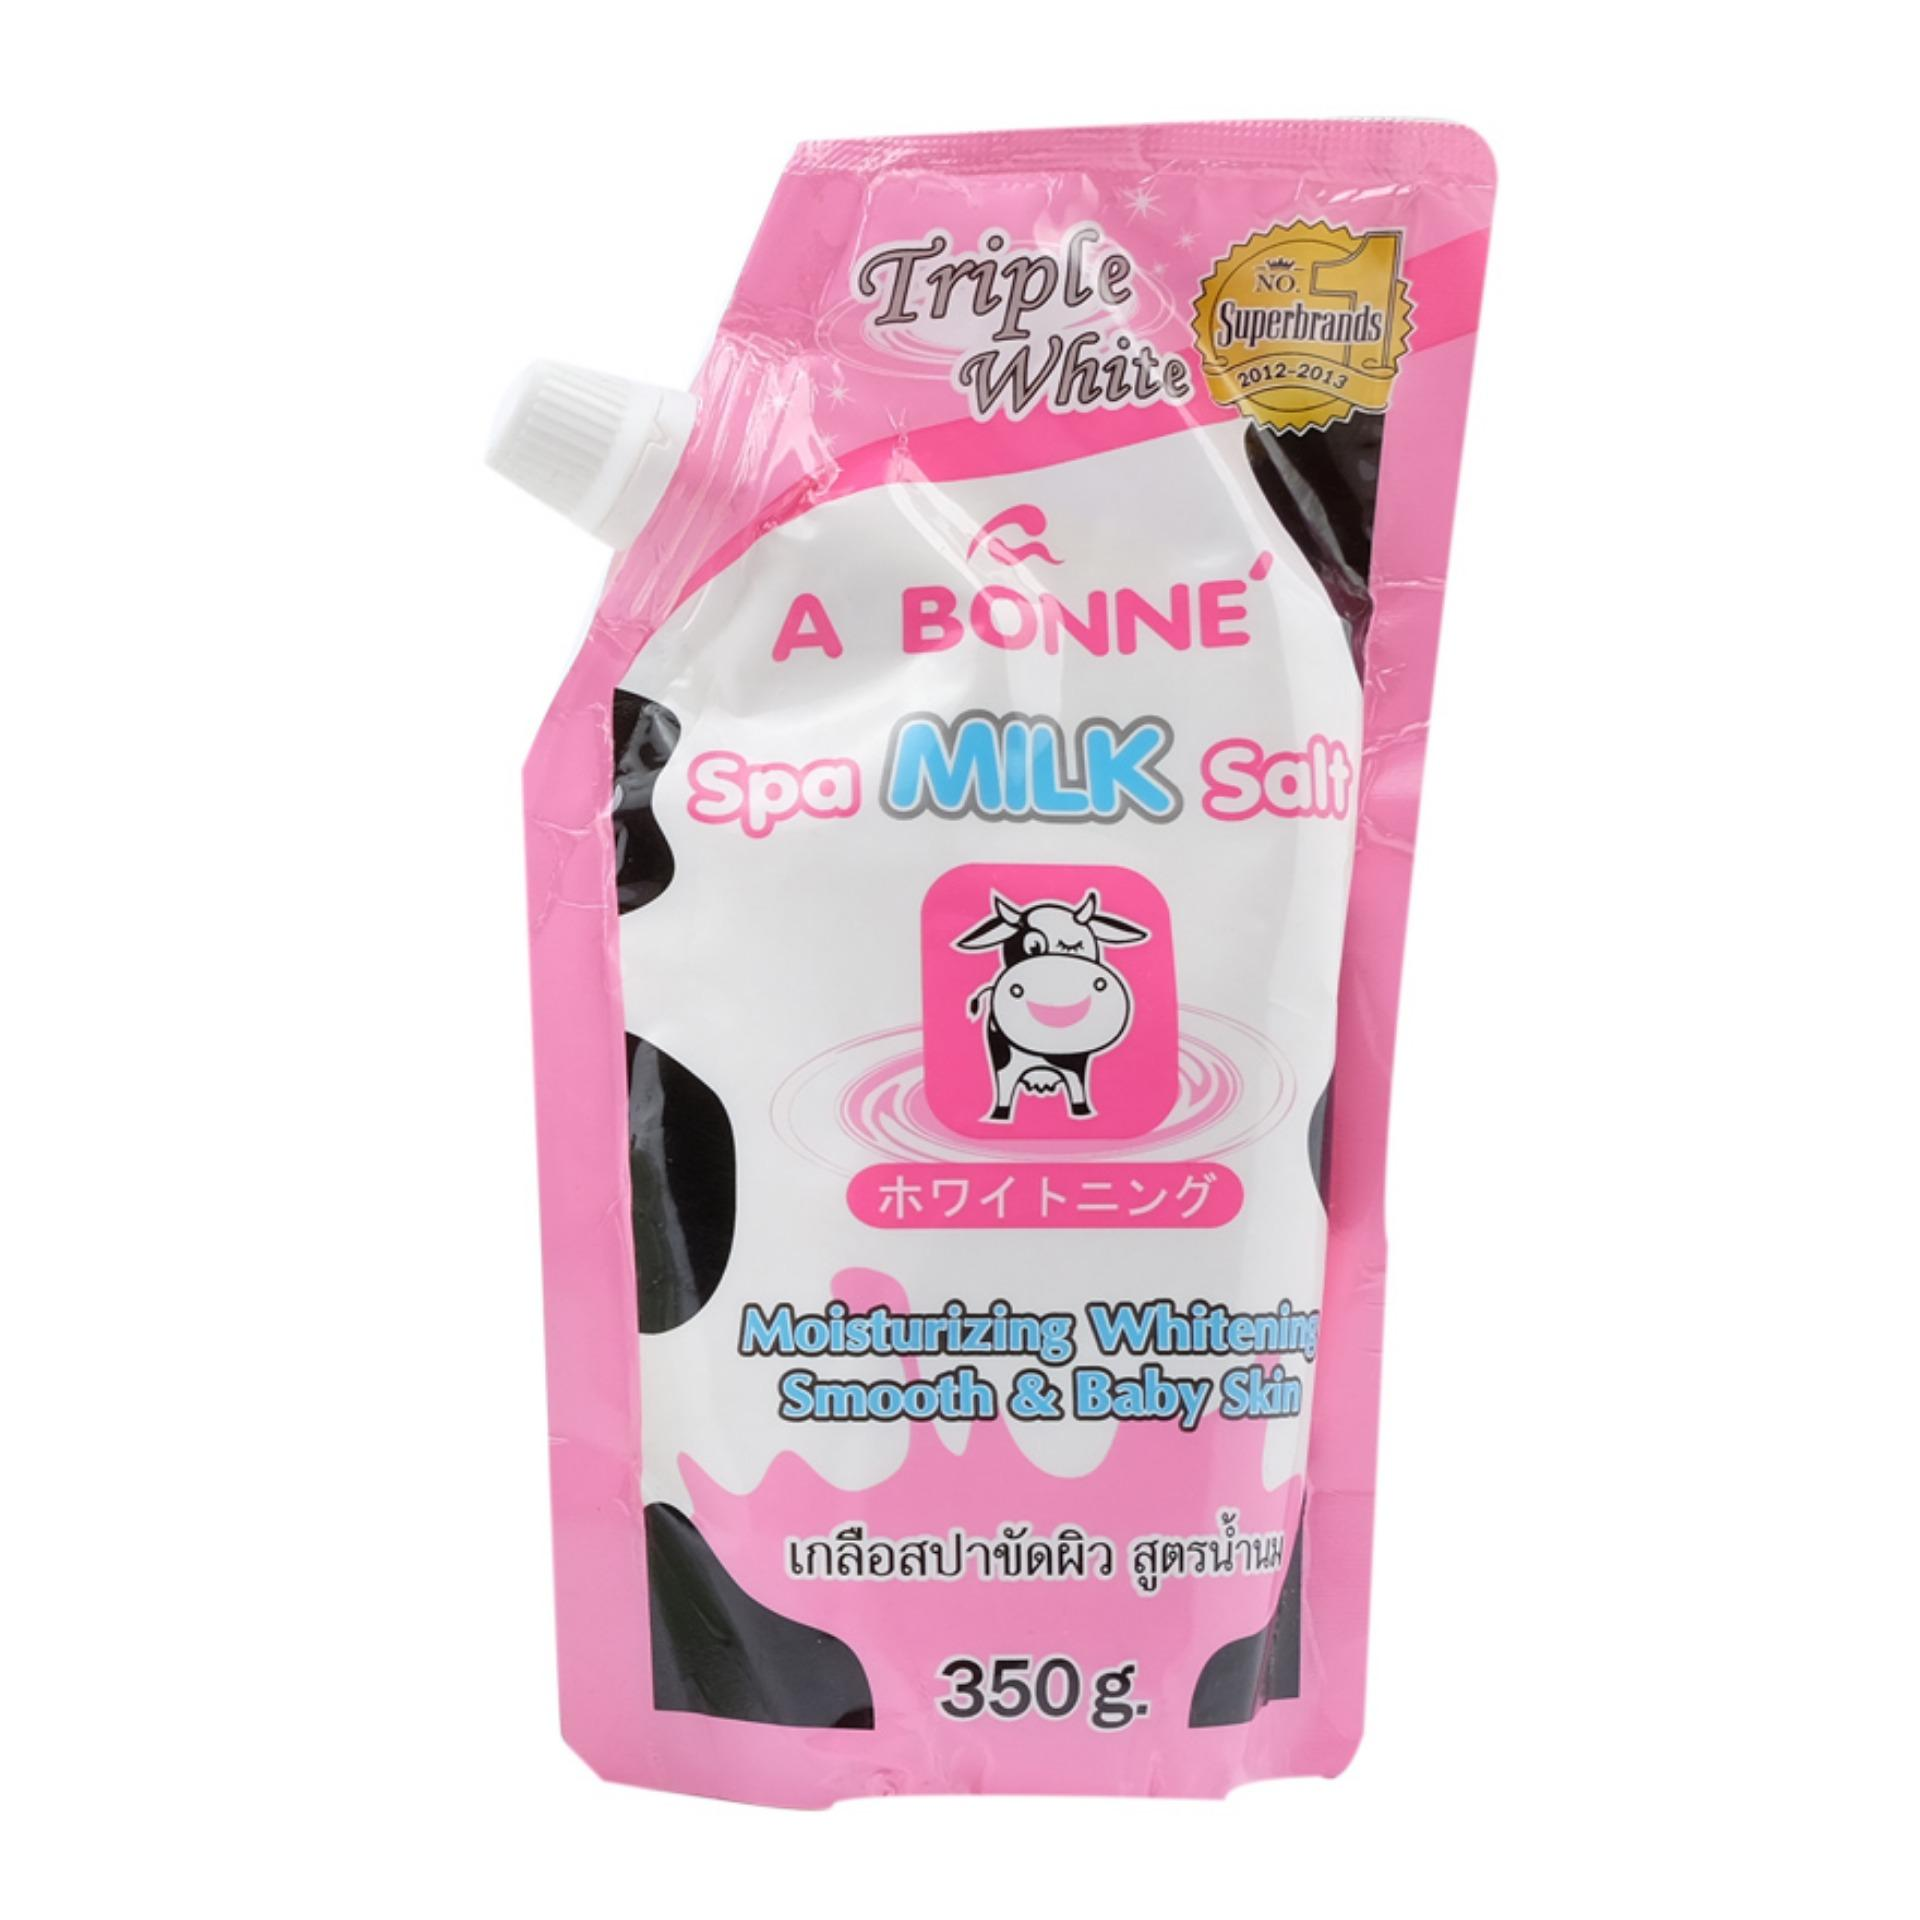 A Bonne Spa Milk Salt 350g By Watsons Personal Care Stores.